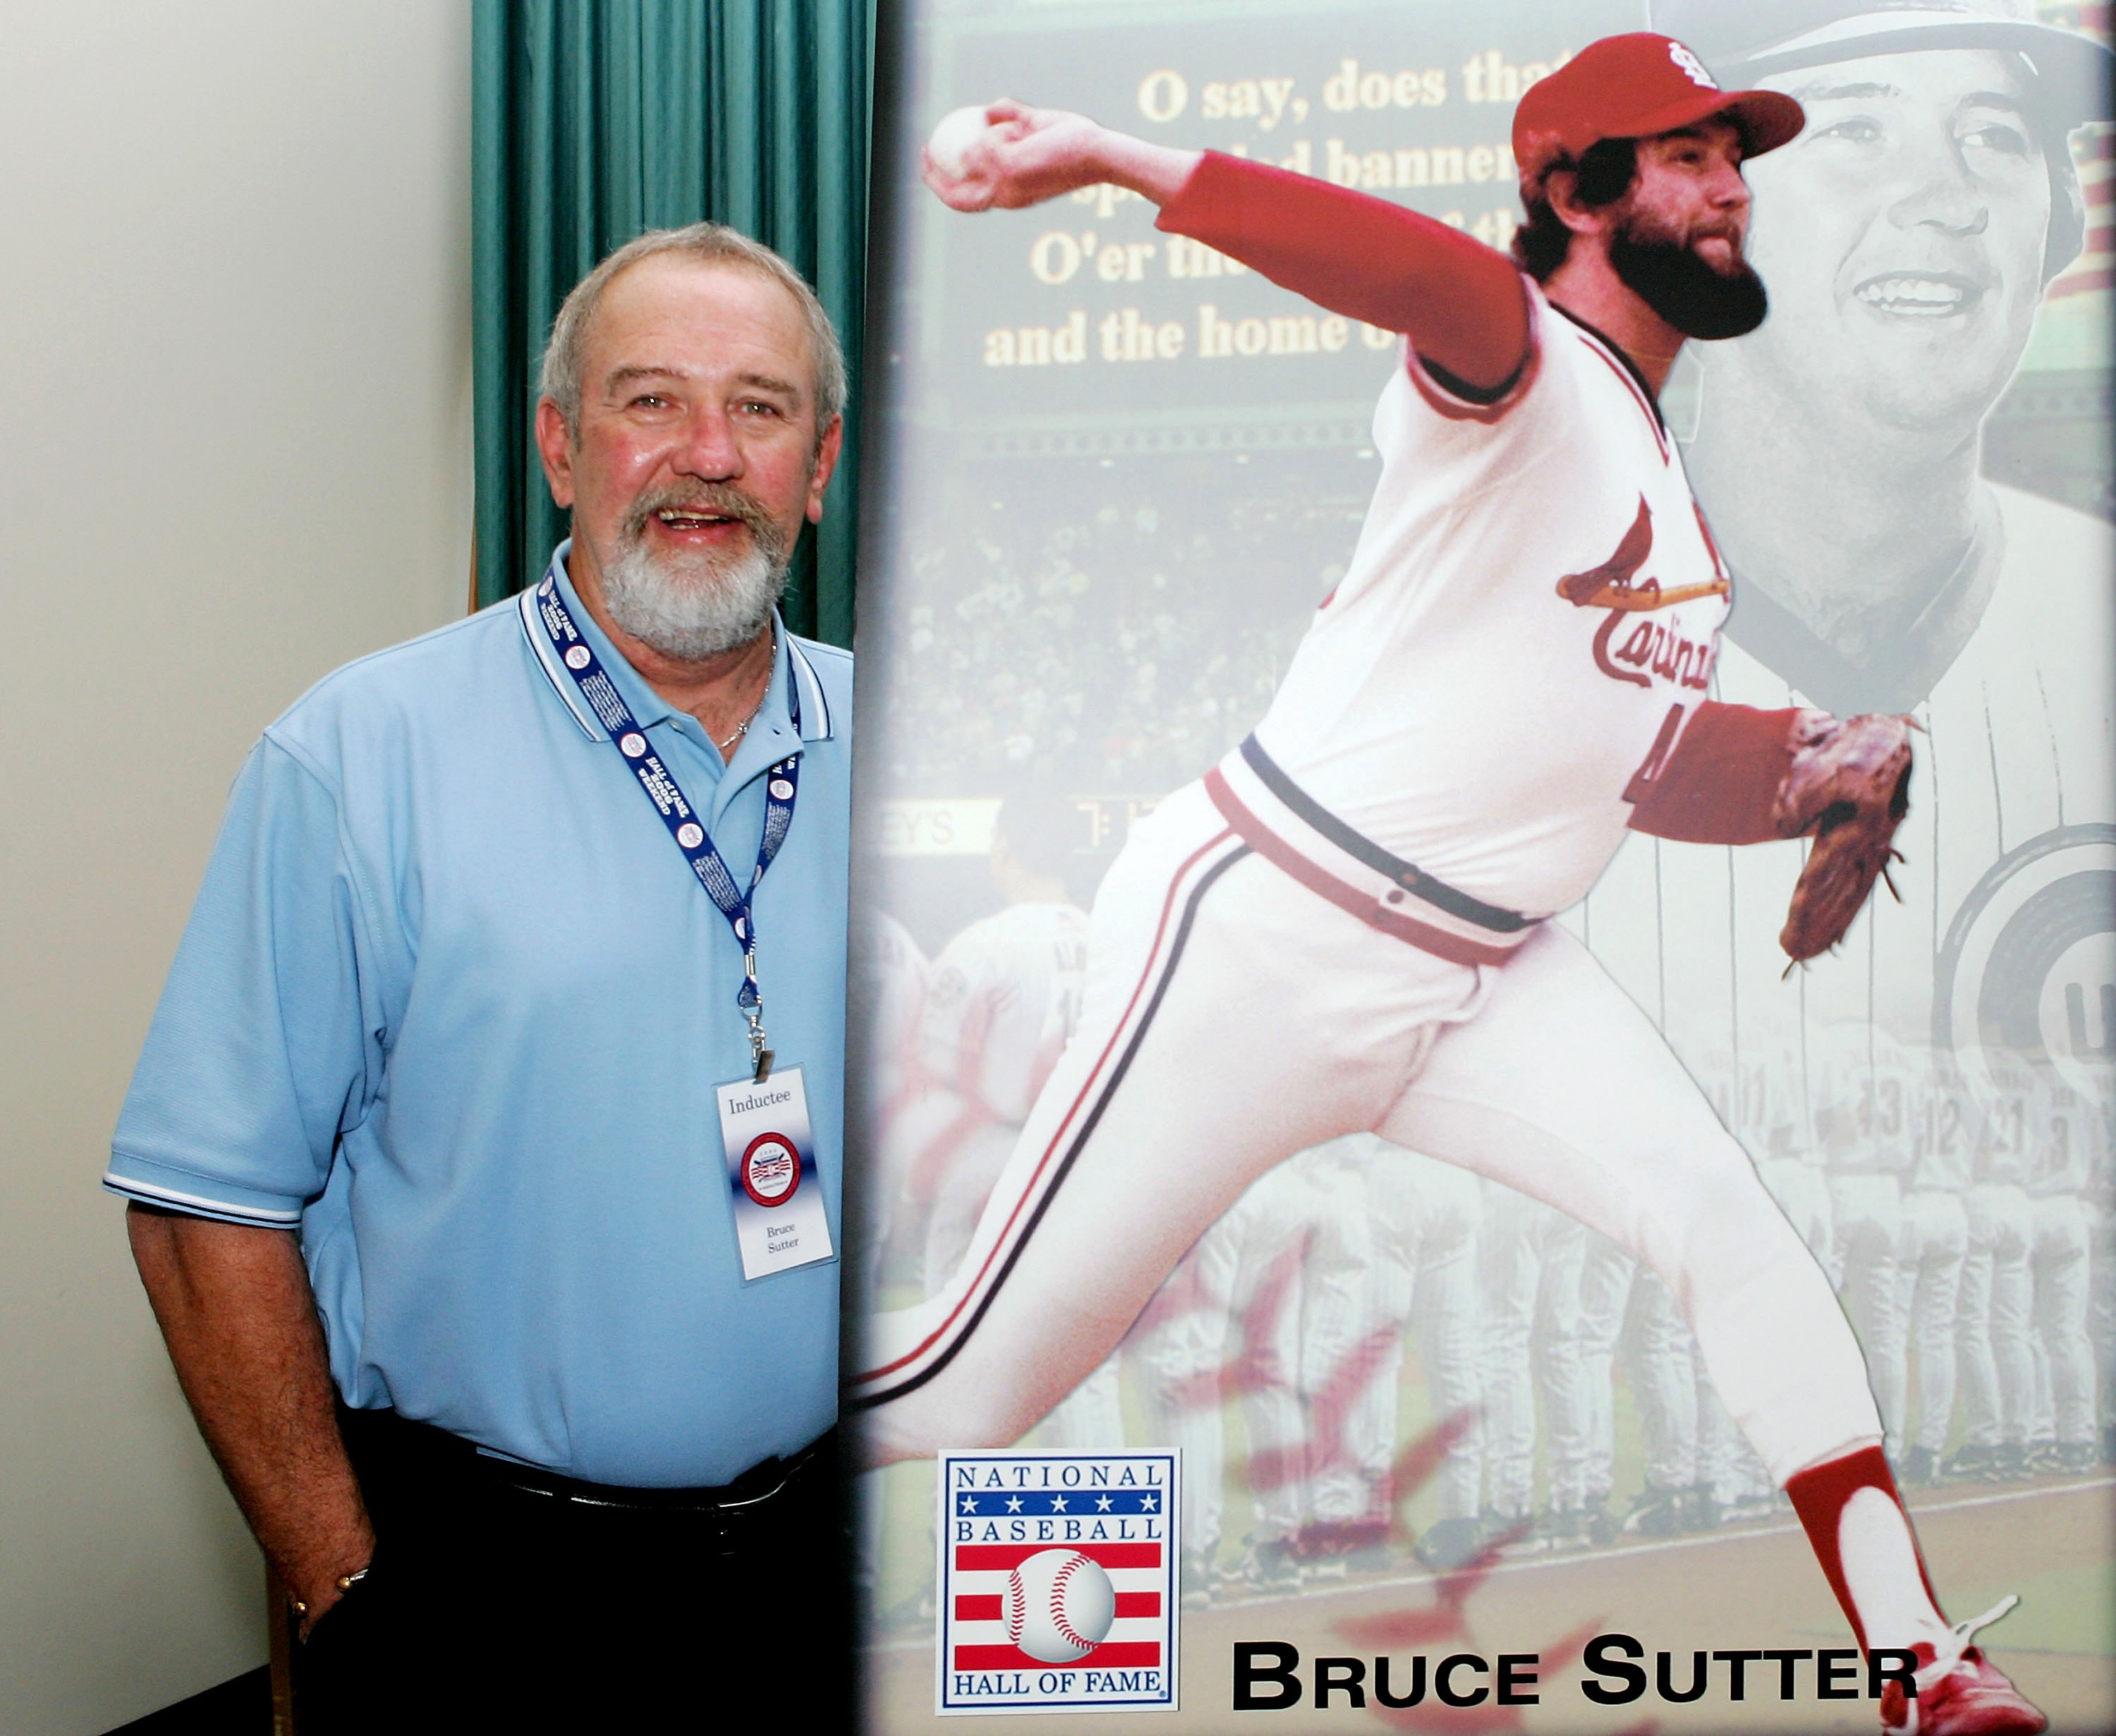 COOPERSTOWN, NY - JULY 29:  2006 Hall of Fame inductee Bruce Sutter poses next to a picture of himself after a press conference at Bassett Hall during the Baseball Hall of Fame weekend on July 29, 2006 in Cooperstown, New York.  (Photo by Jim McIsaac/Gett